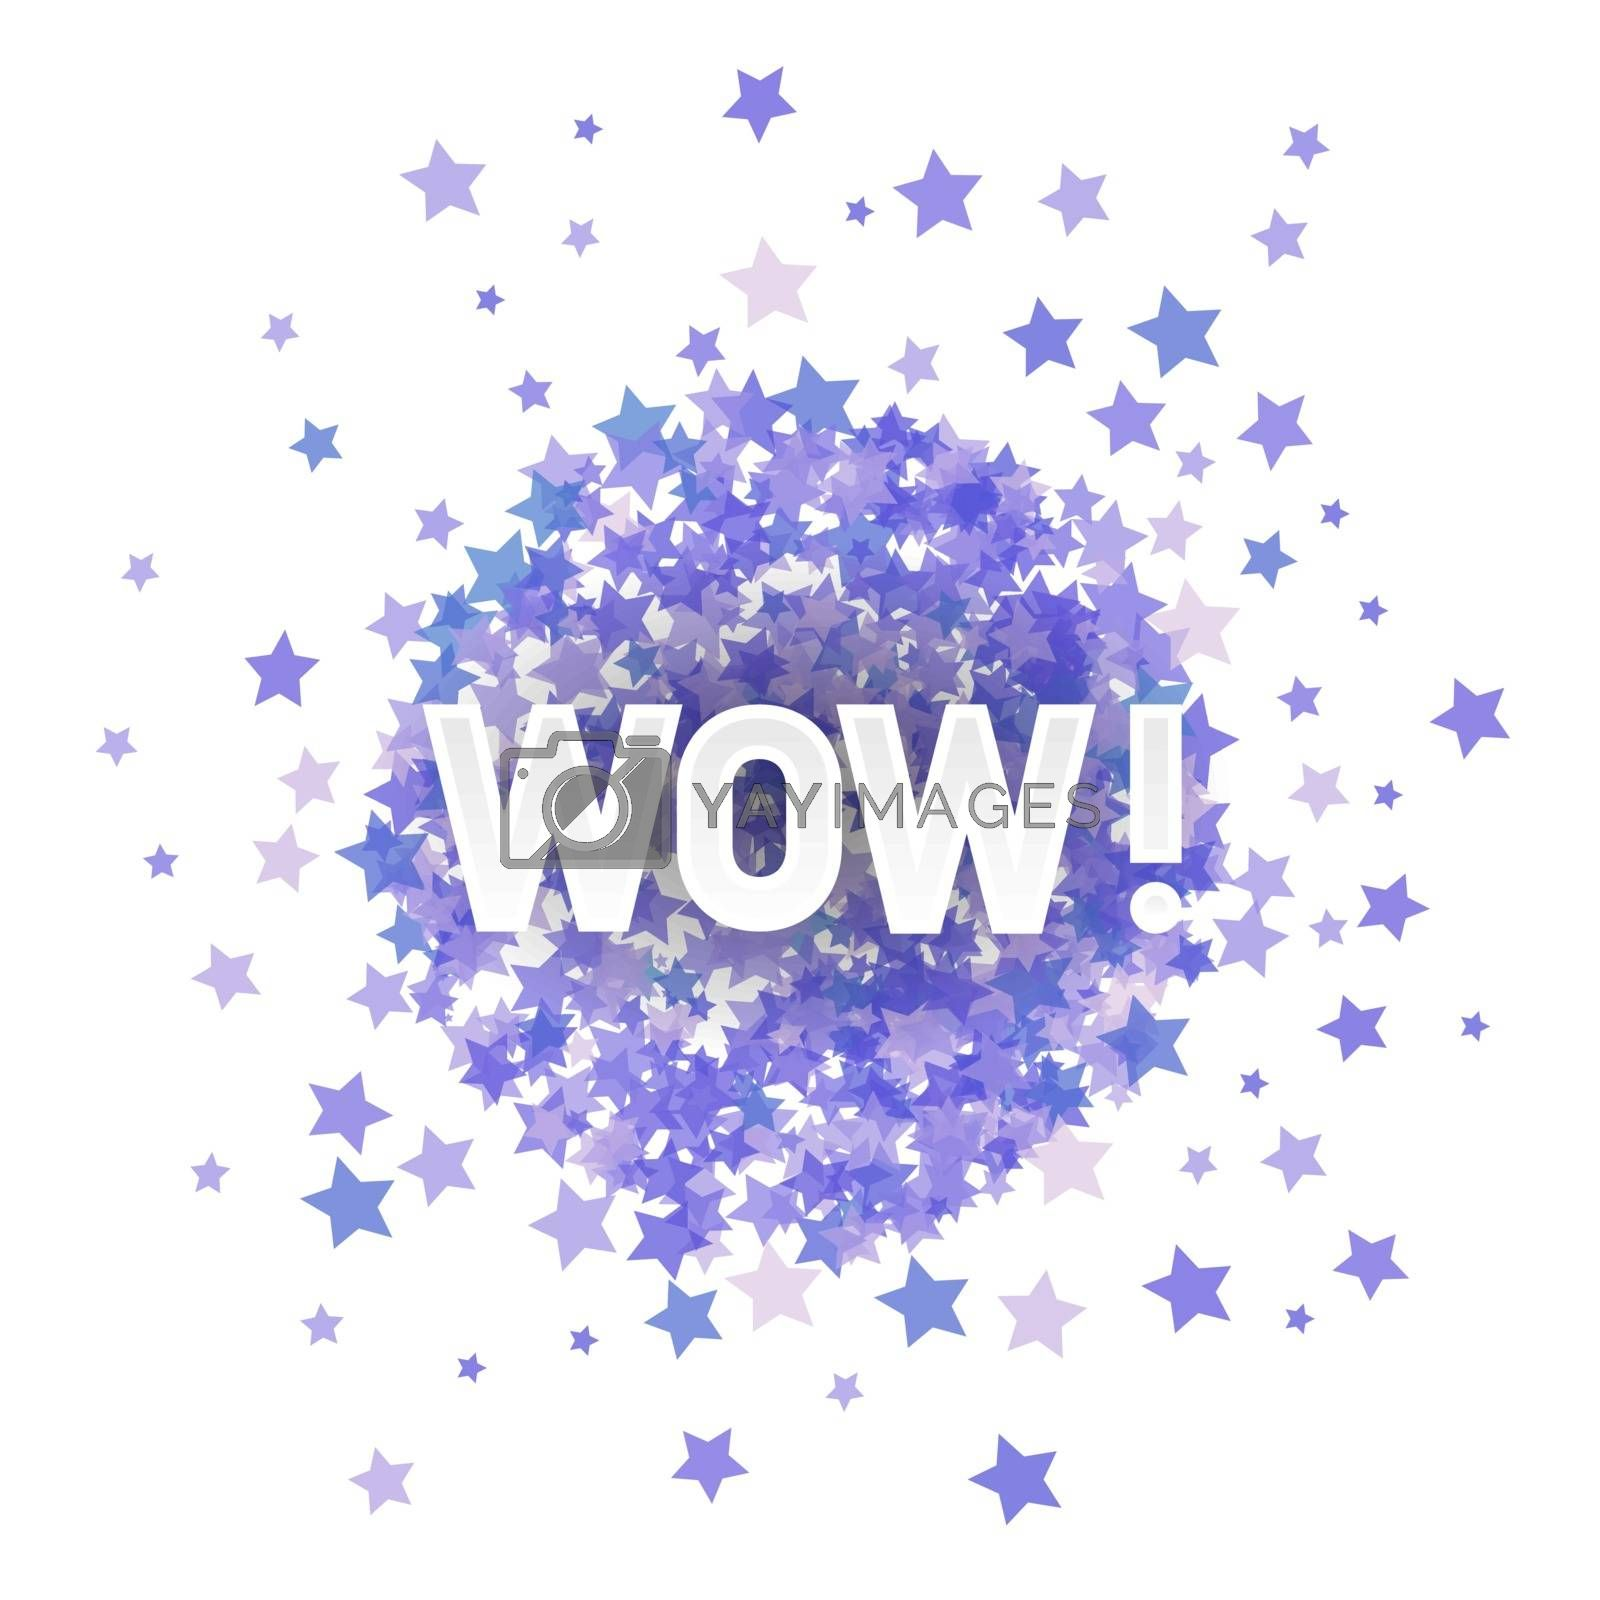 WOW Lettering on Blue Transparent Starry Background for Web Banners, Header, Shop, Logo, Logotype, Sign.